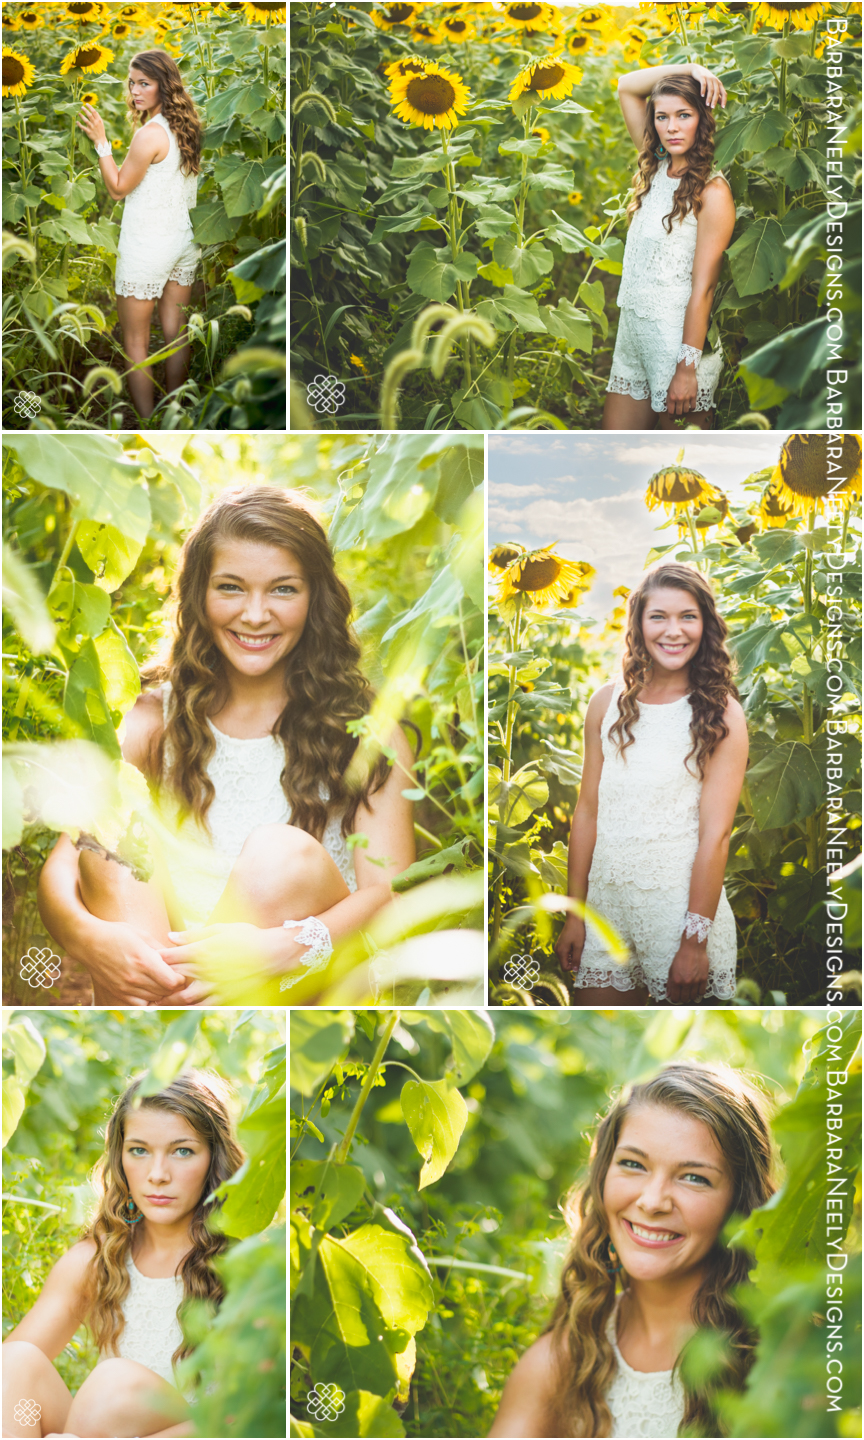 senior spokesmodel in sunflower field